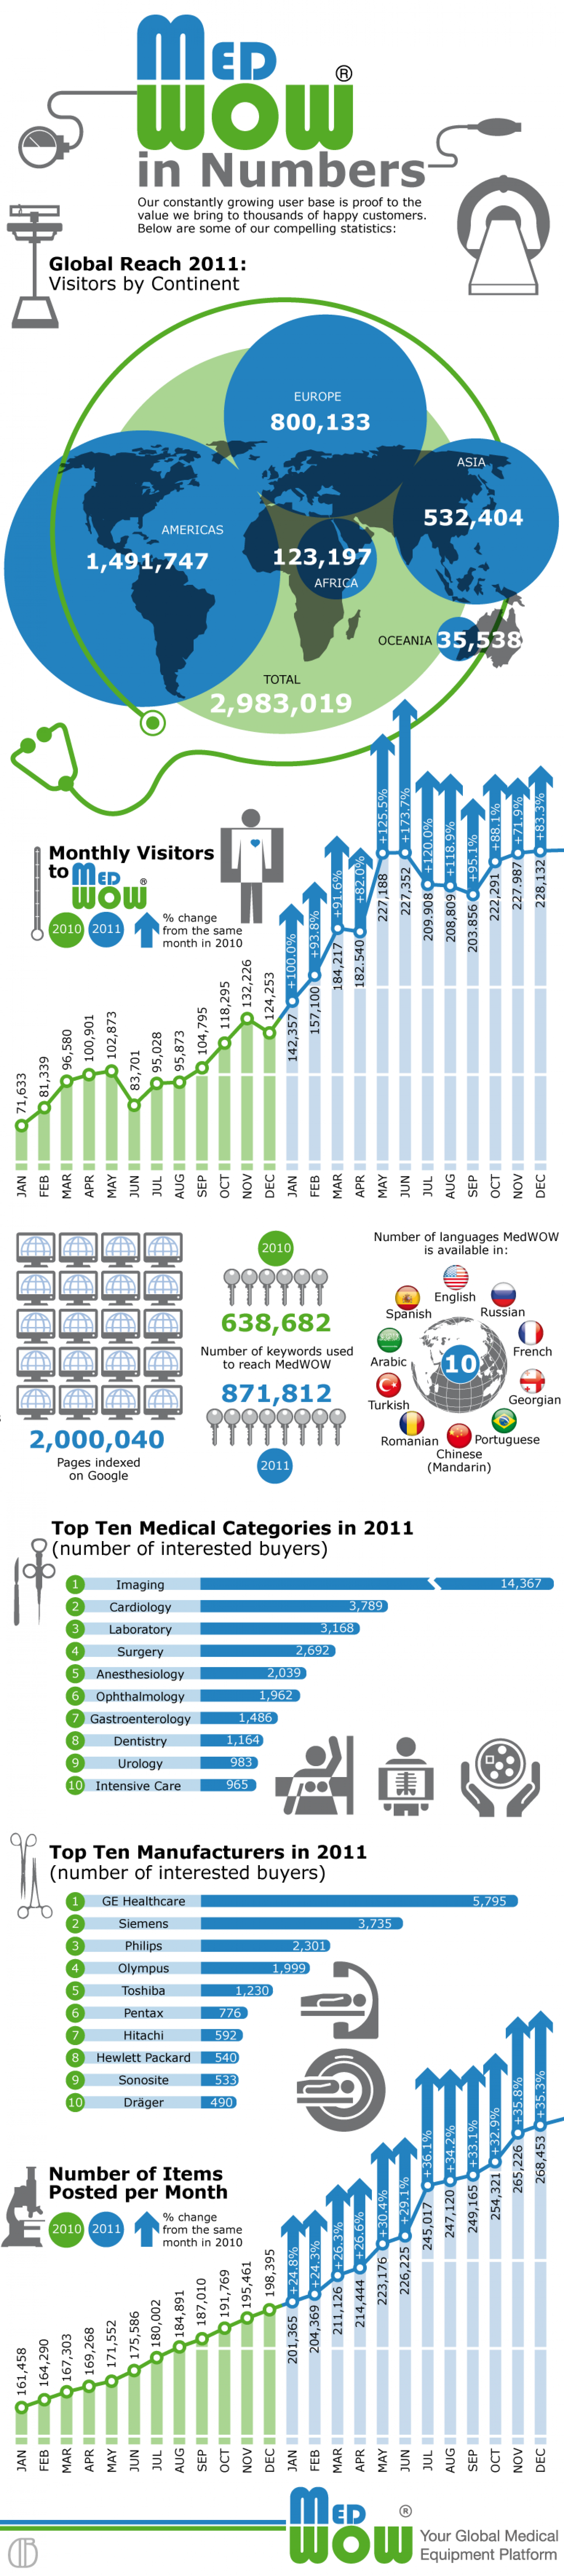 MedWOW in Numbers Infographic